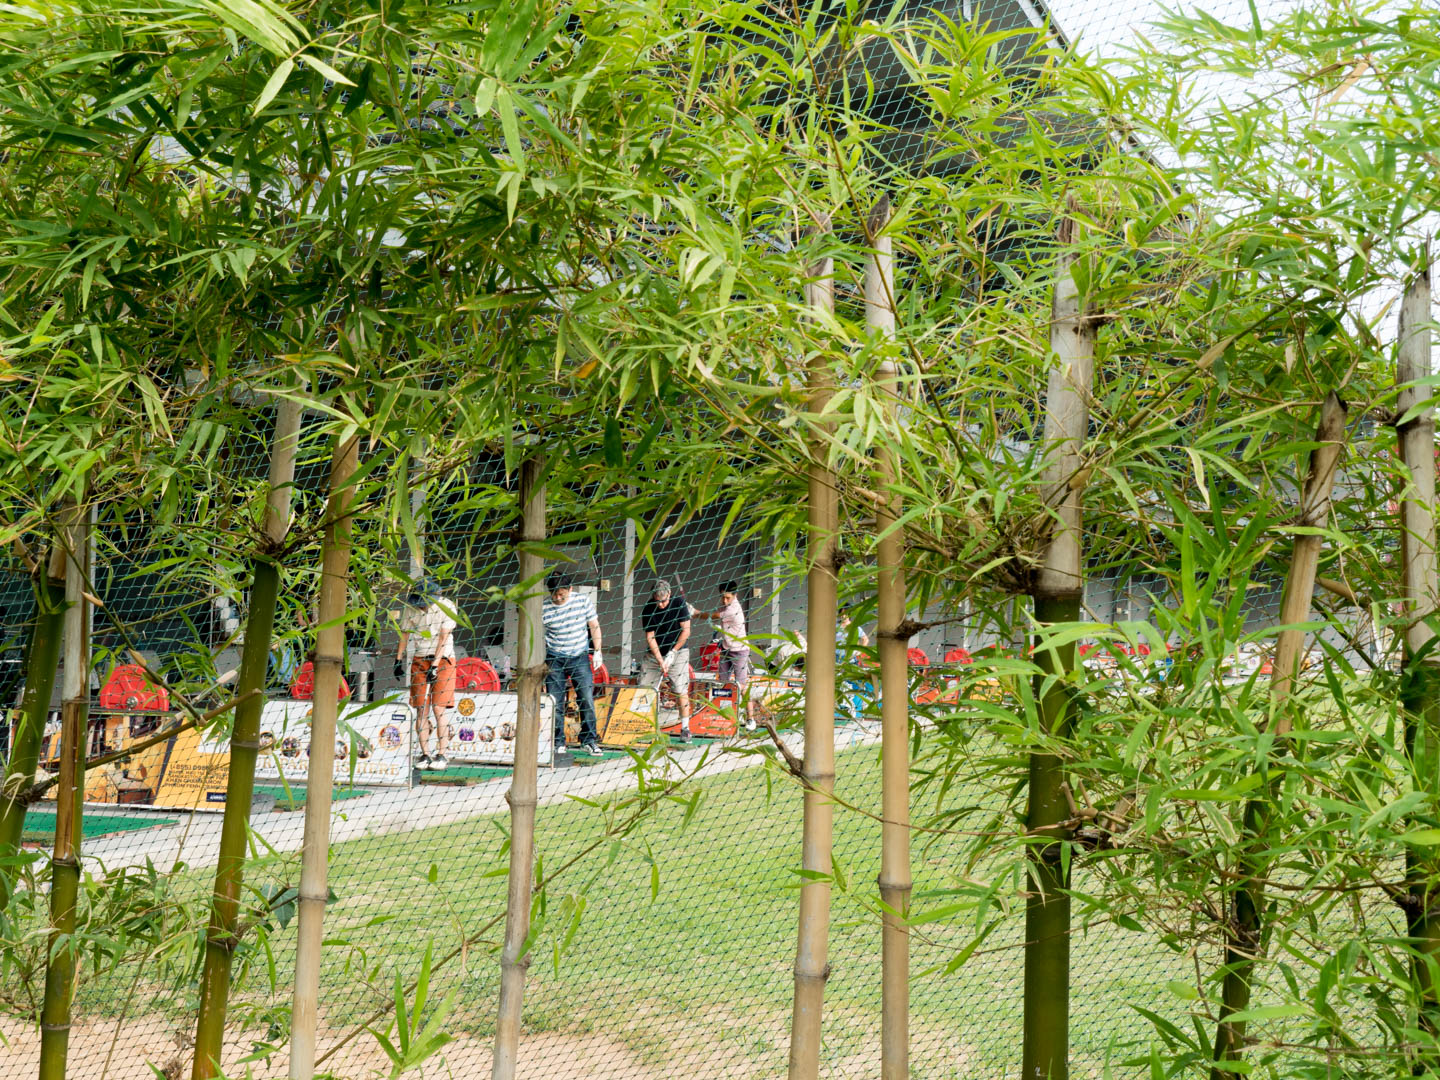 driving range seen through the bamboo